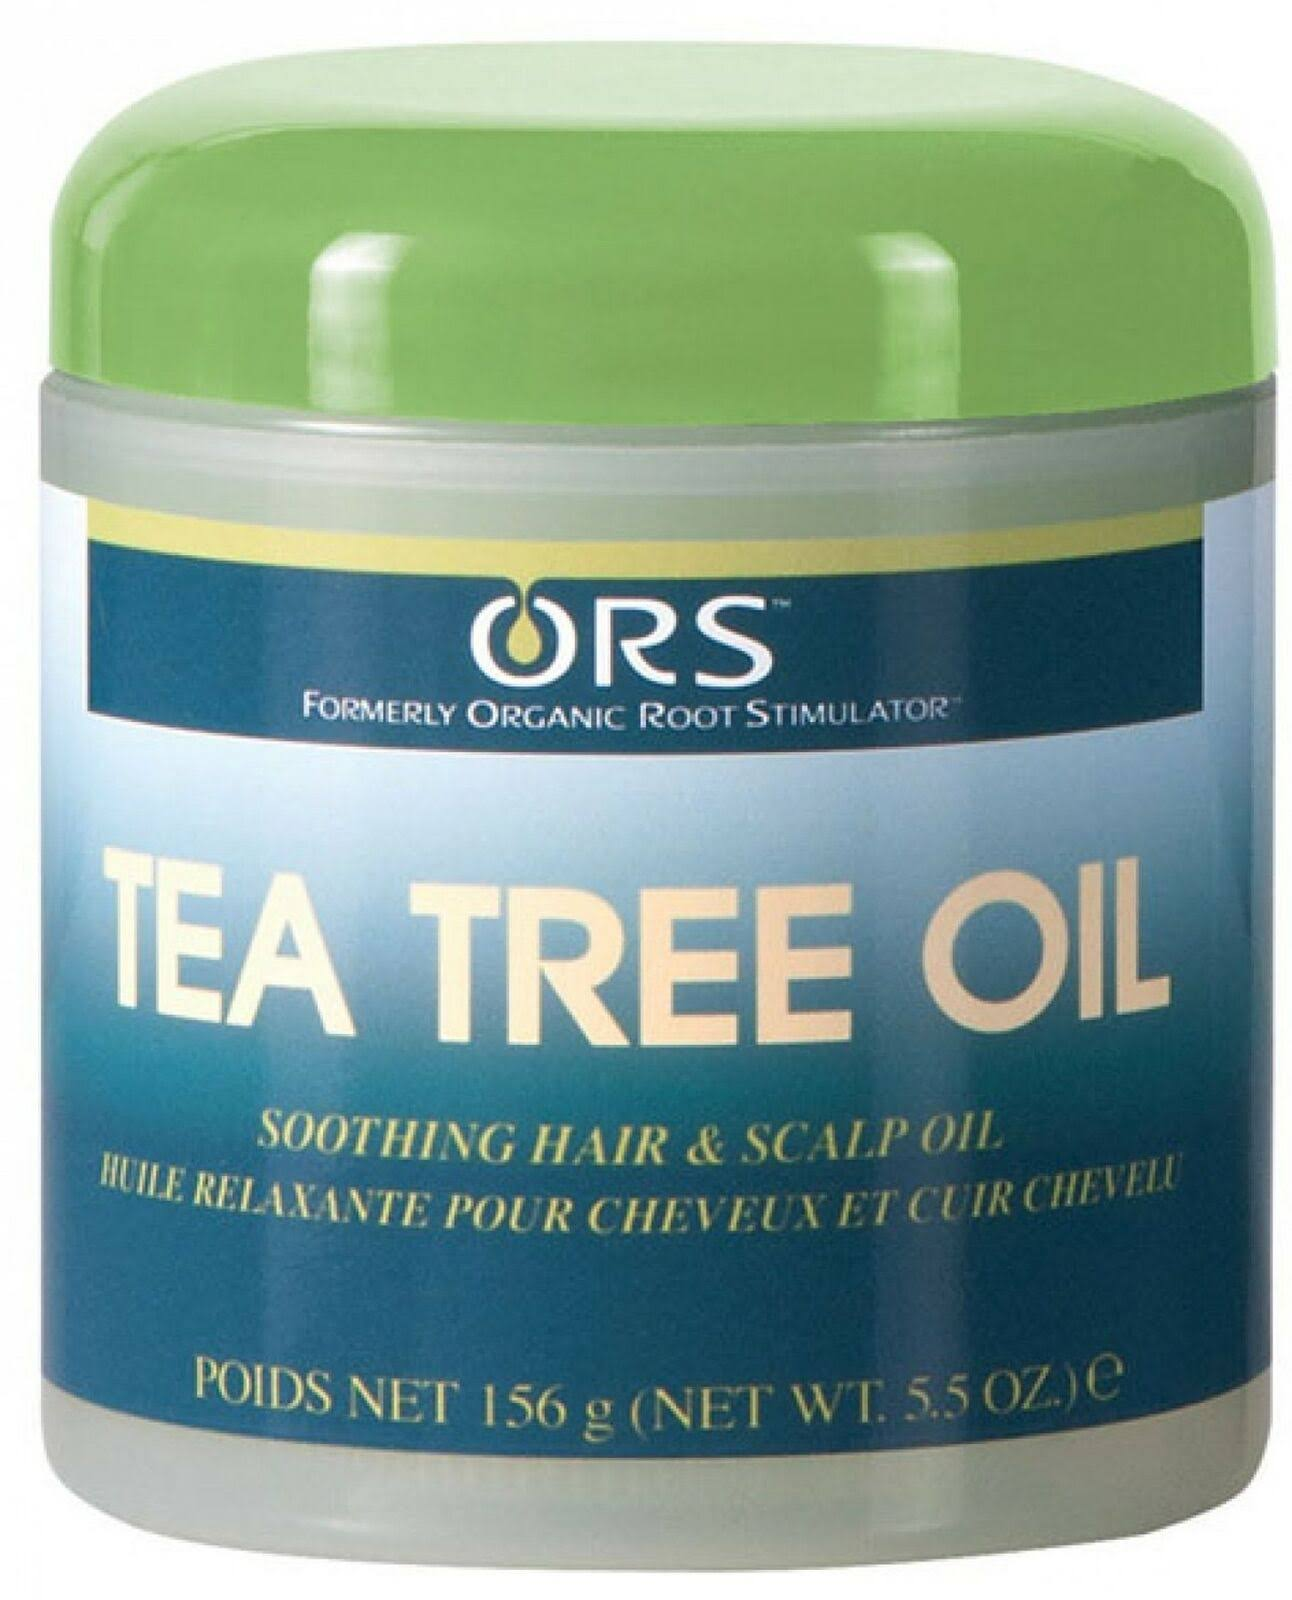 Organic Root Stimulator Tea Tree Hair and Scalp Oil - 5.5 Oz